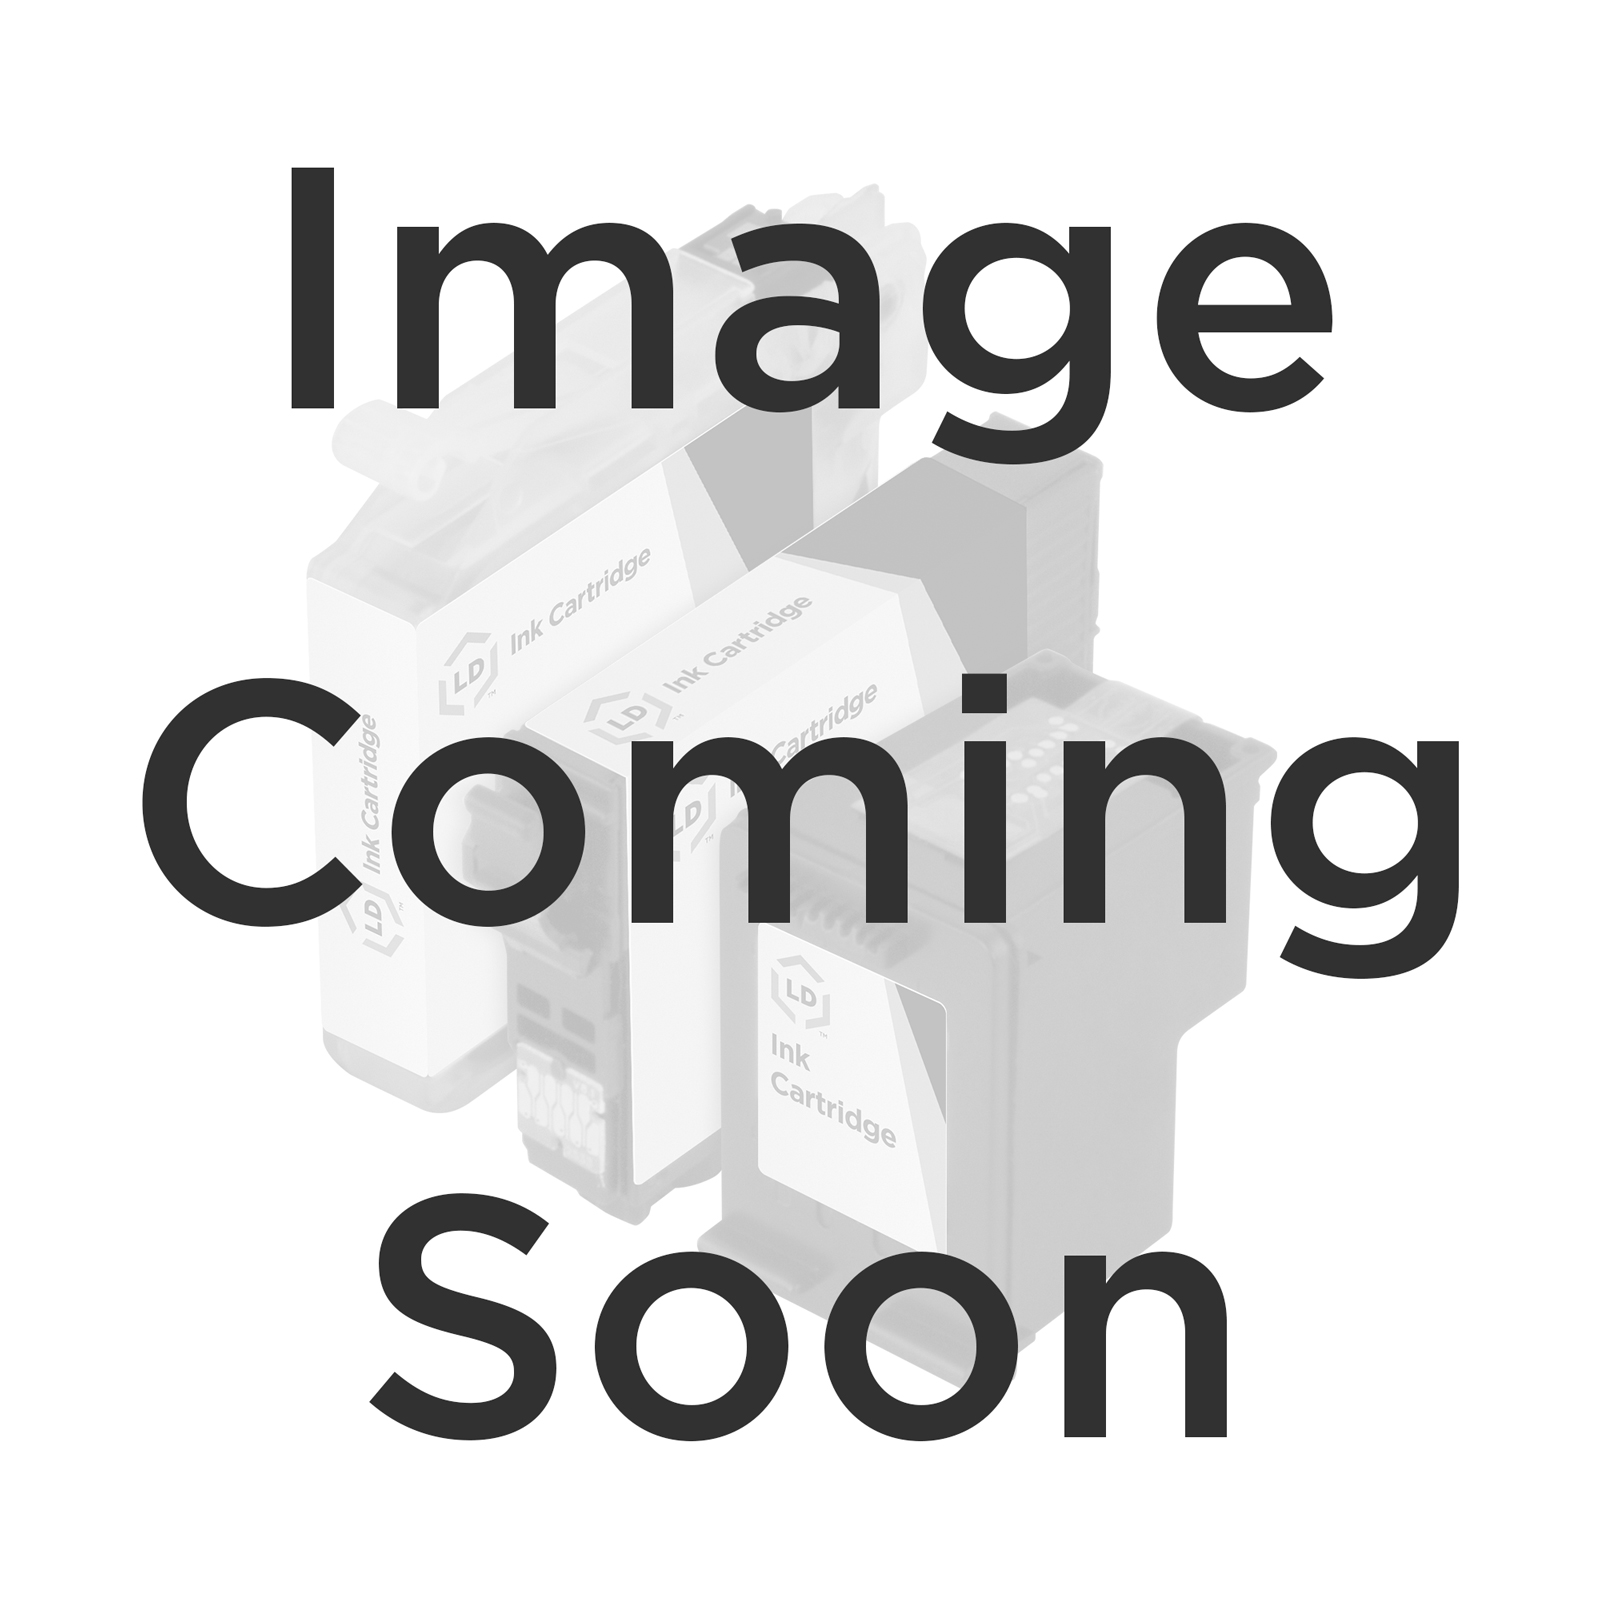 Compatible Canon PGI-220 & CLI-221: 1 Pigment Bk PGI-220 & 1 Each of CLI-221 Bk, C, M, Y (Set of Ink)